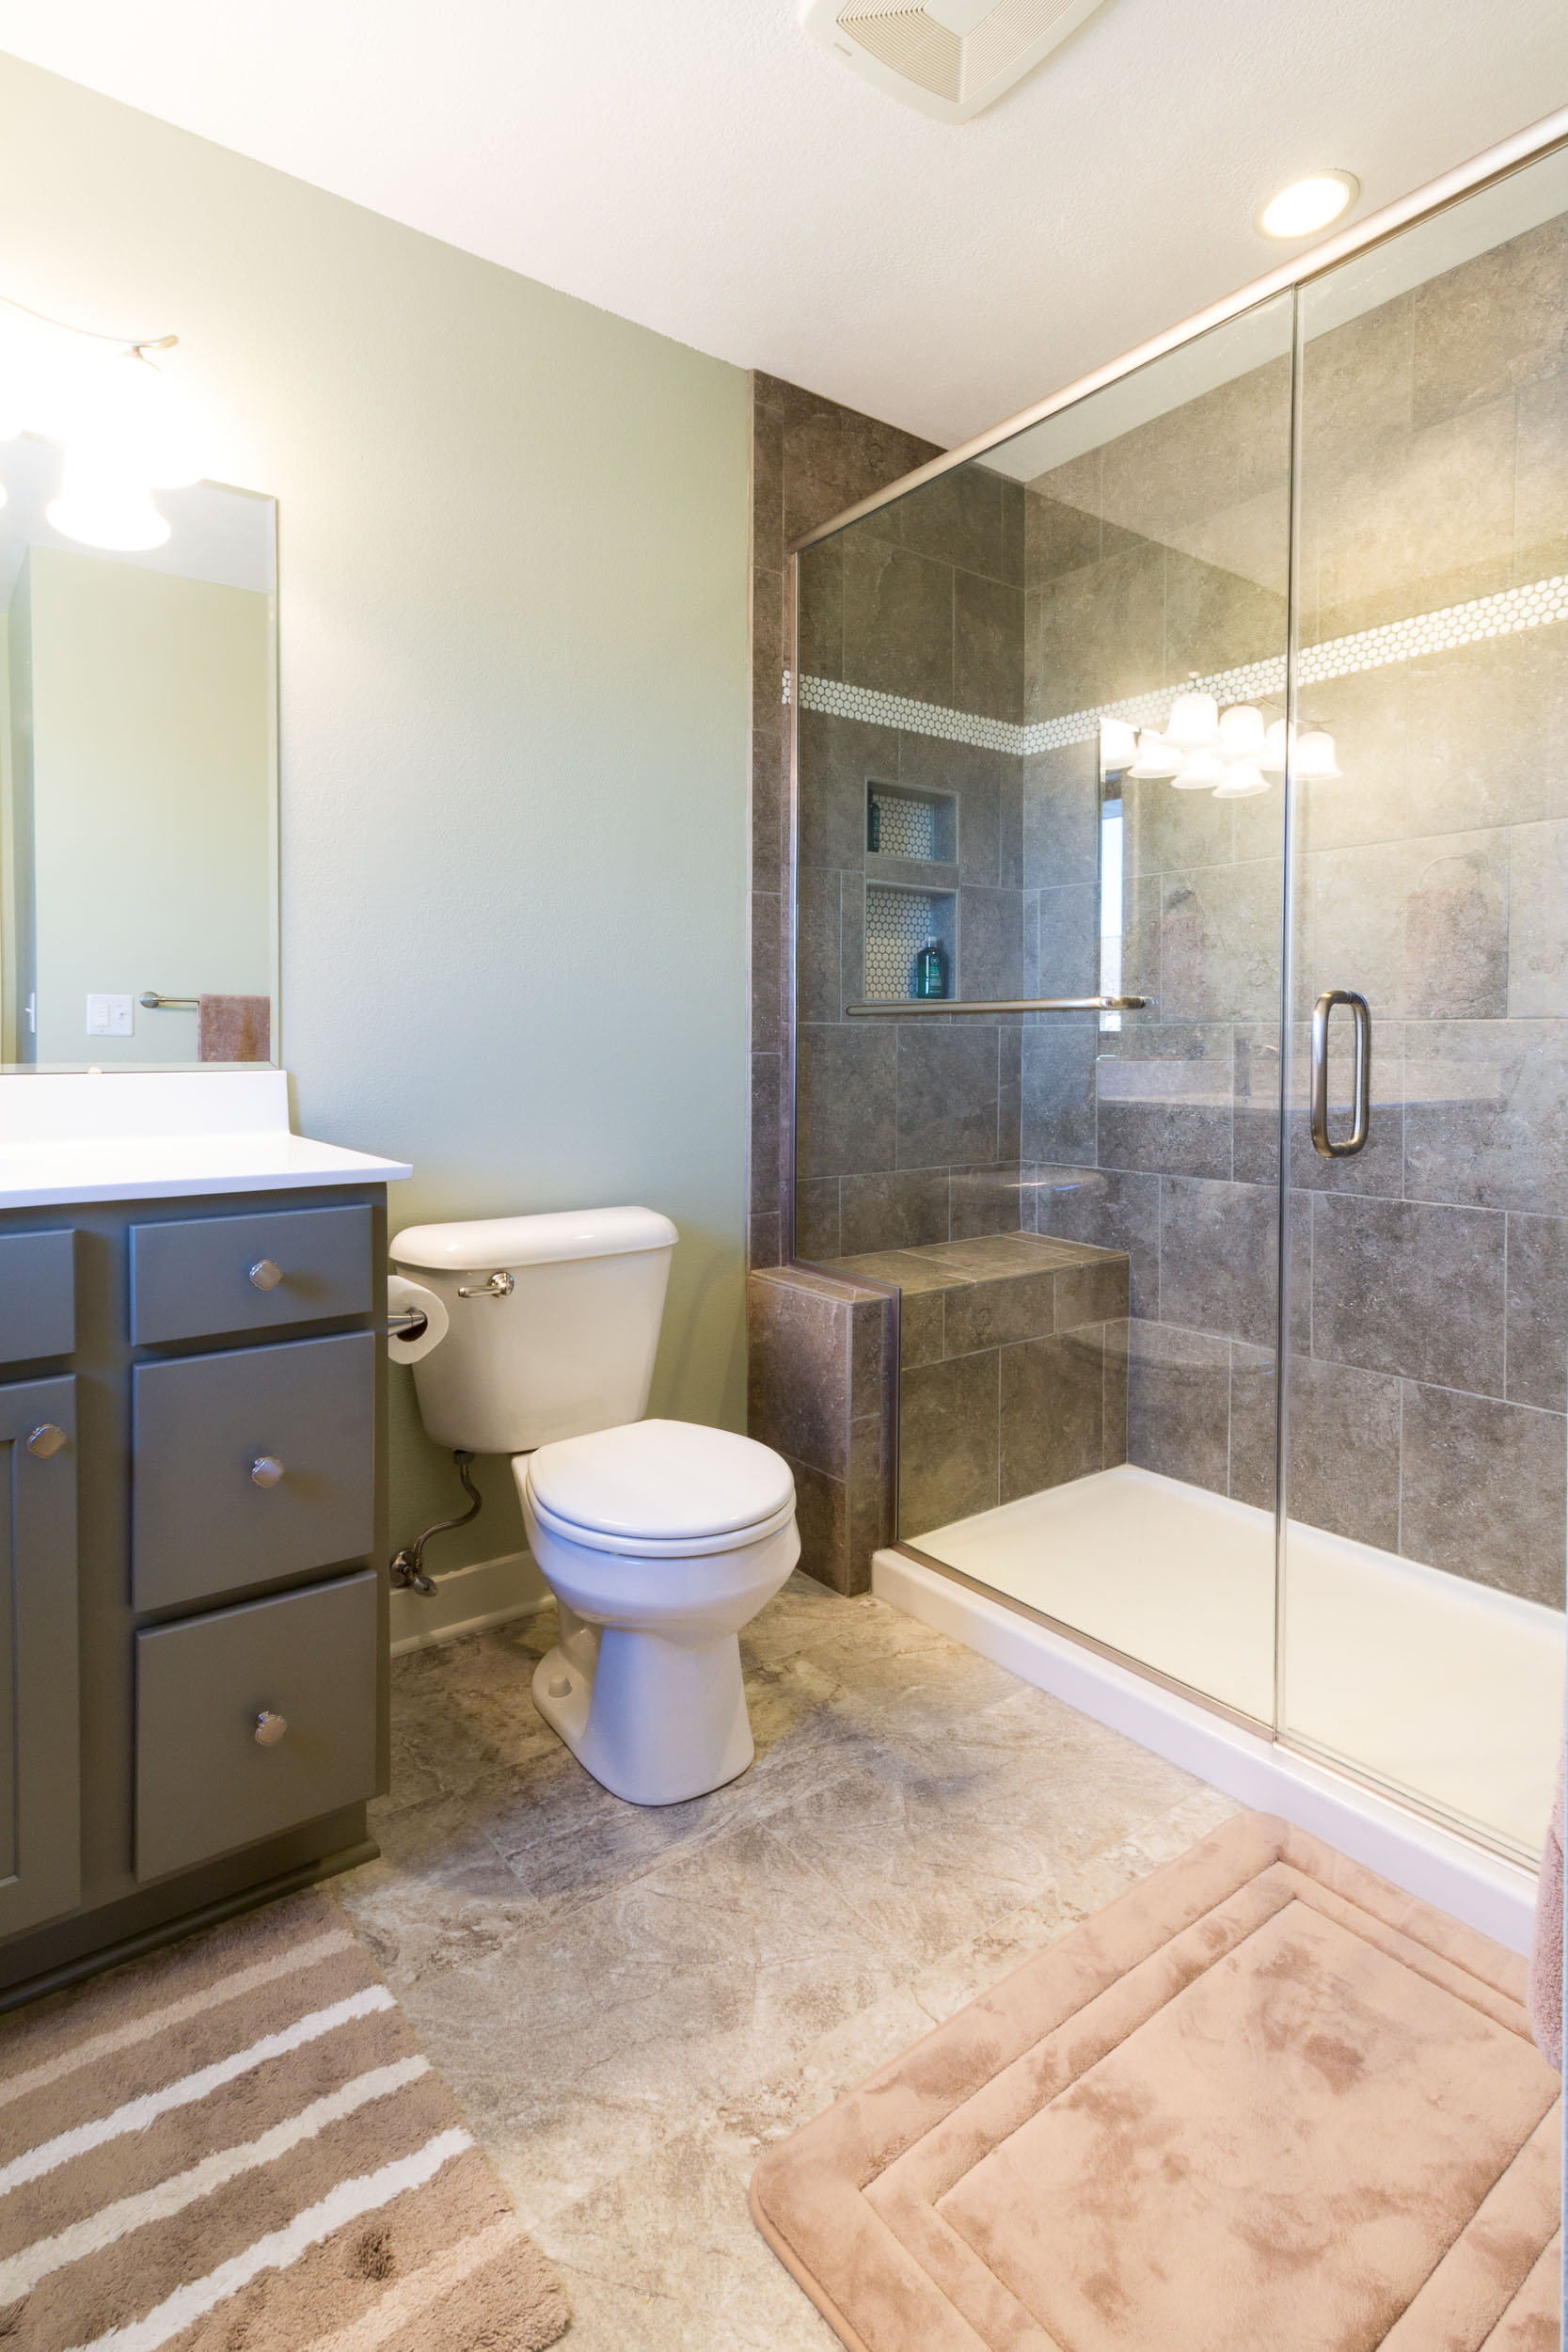 - A jetted tub was removed and this shower installed while remodeling this master bathroom in Waunakee, WI.